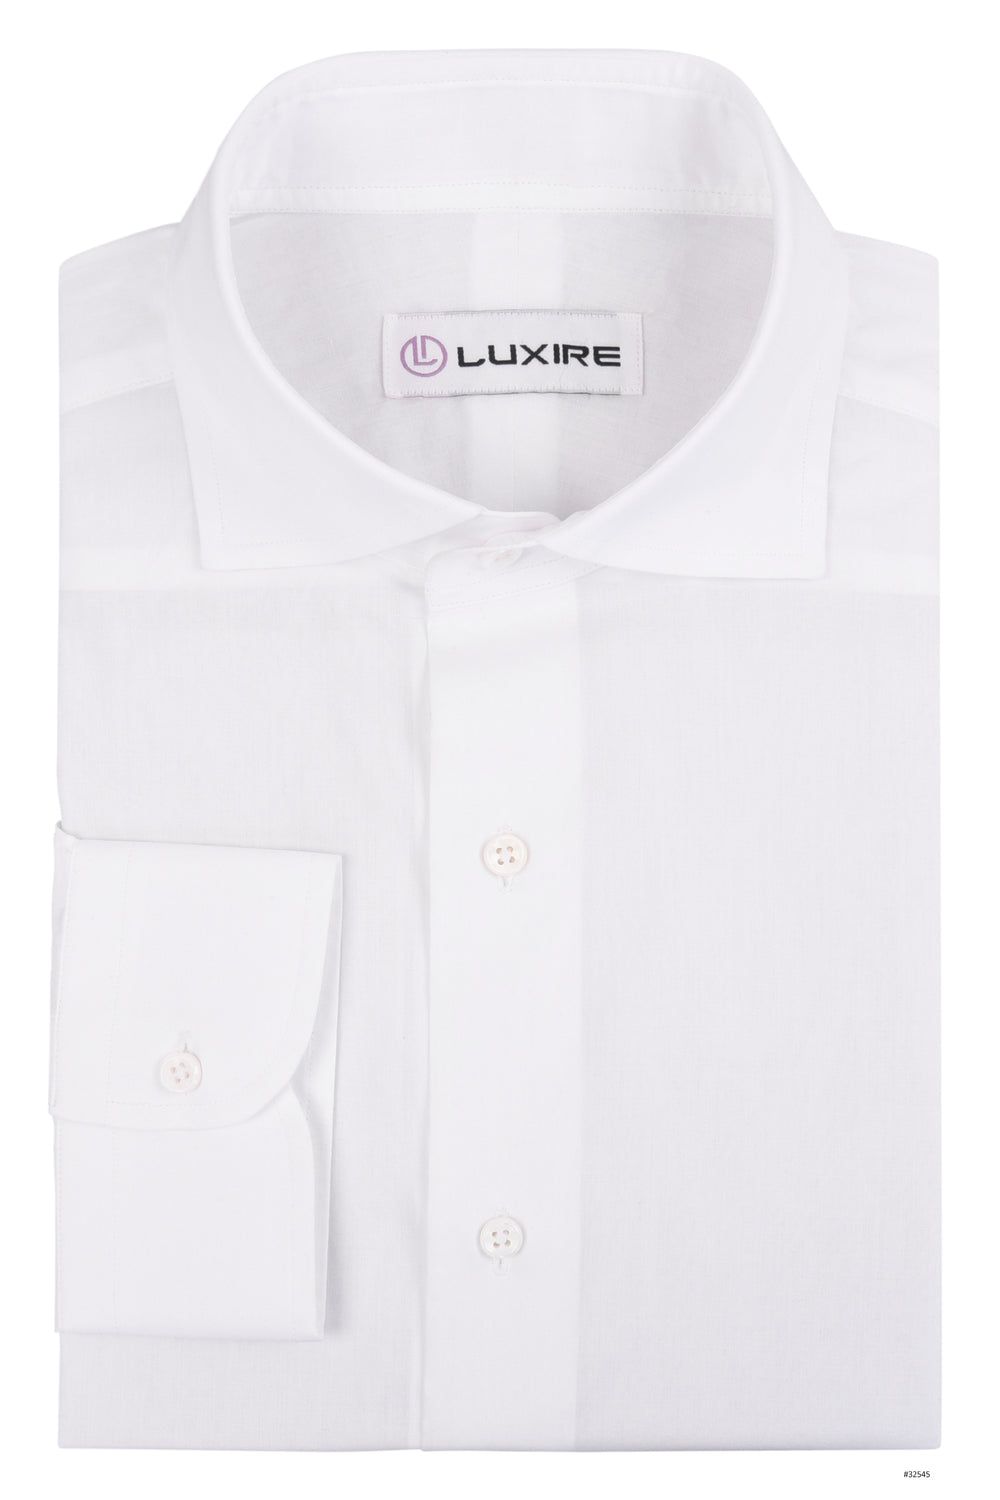 Grandi and Rubinelli Every Day White Shirt